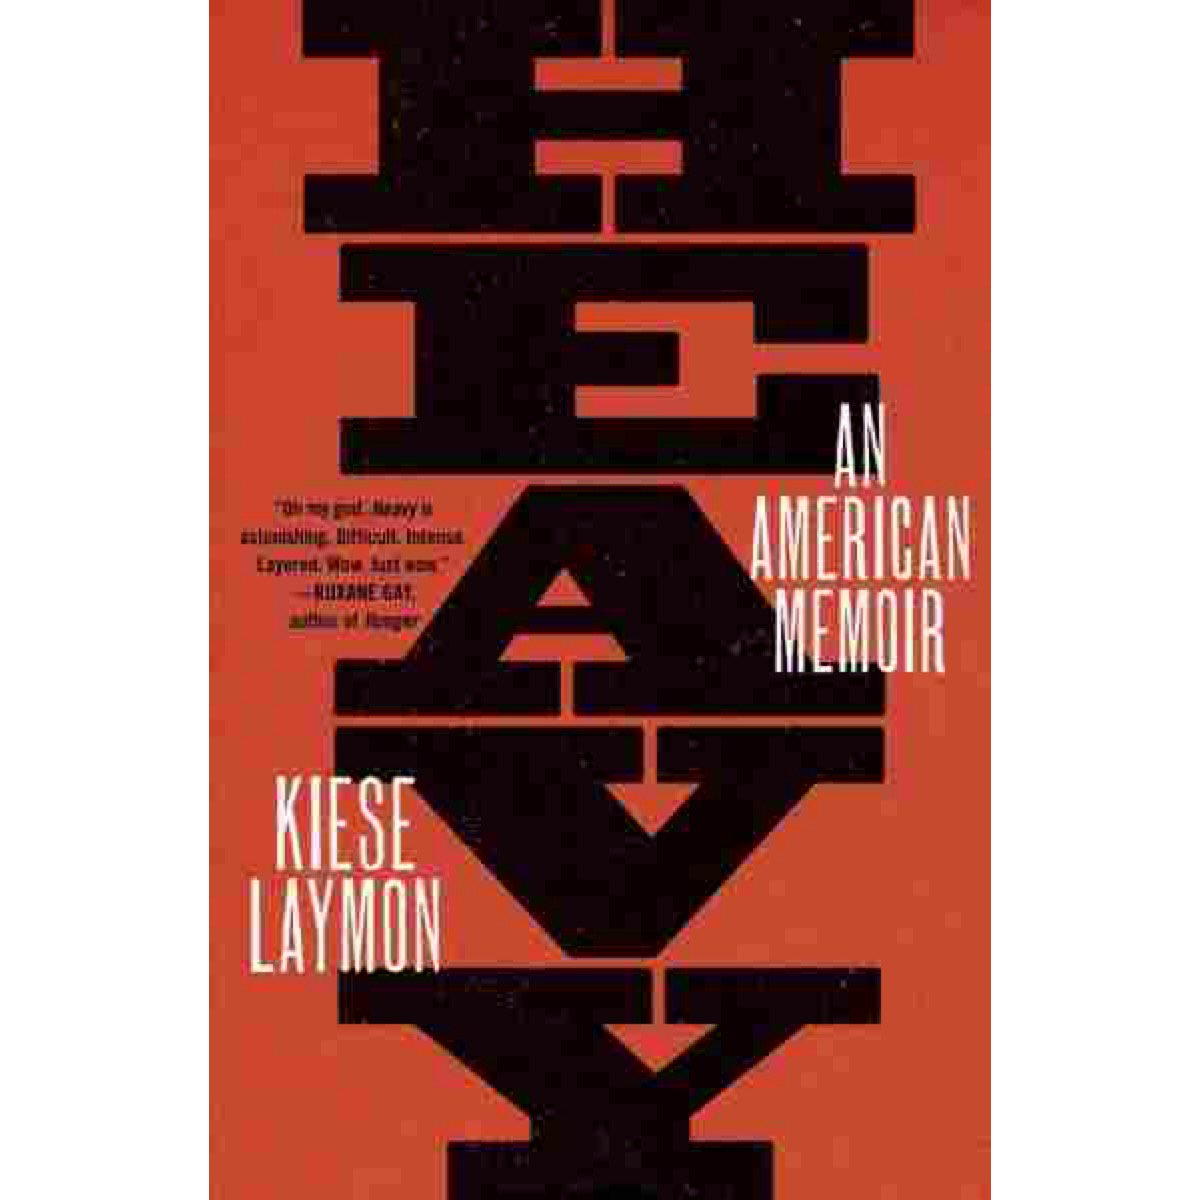 Good writers ask the painful questions. GREAT writers ask THEMSELVES the painful questions & ANSWER. @kieselaymon does that & more in HEAVY @scribnerbooks #libfaves18 #readadv #memoir